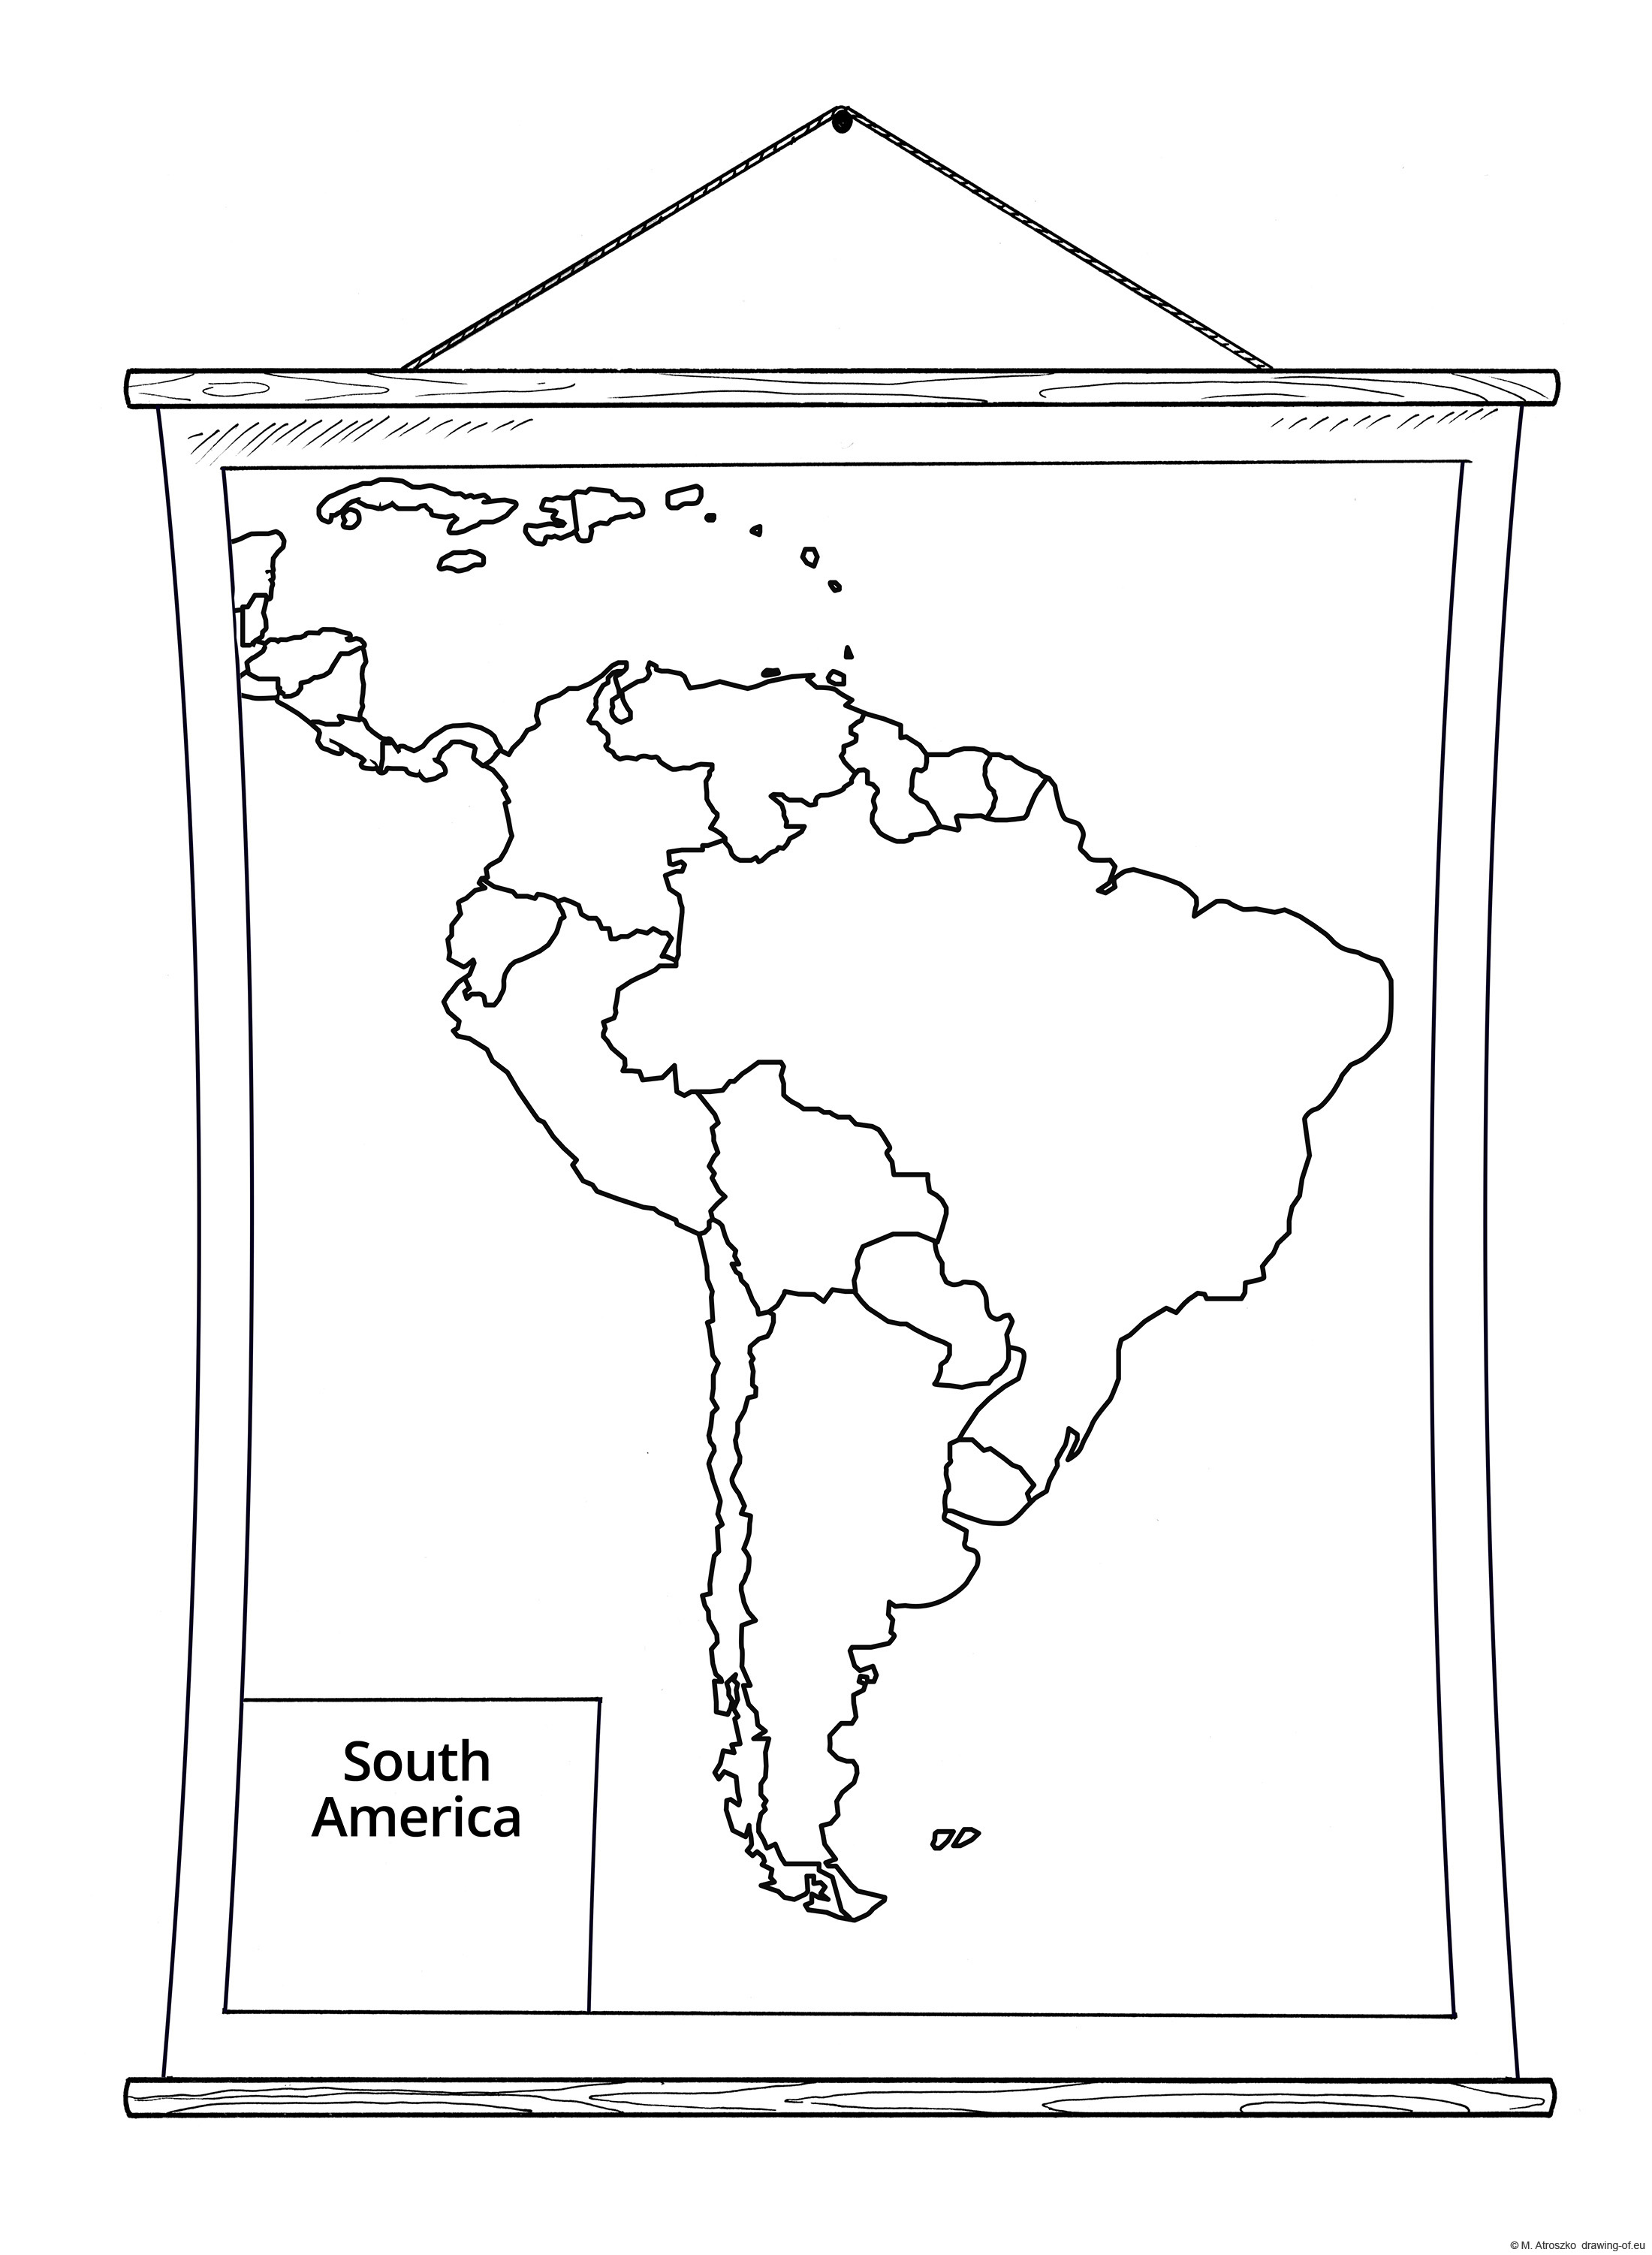 School wall map of South America